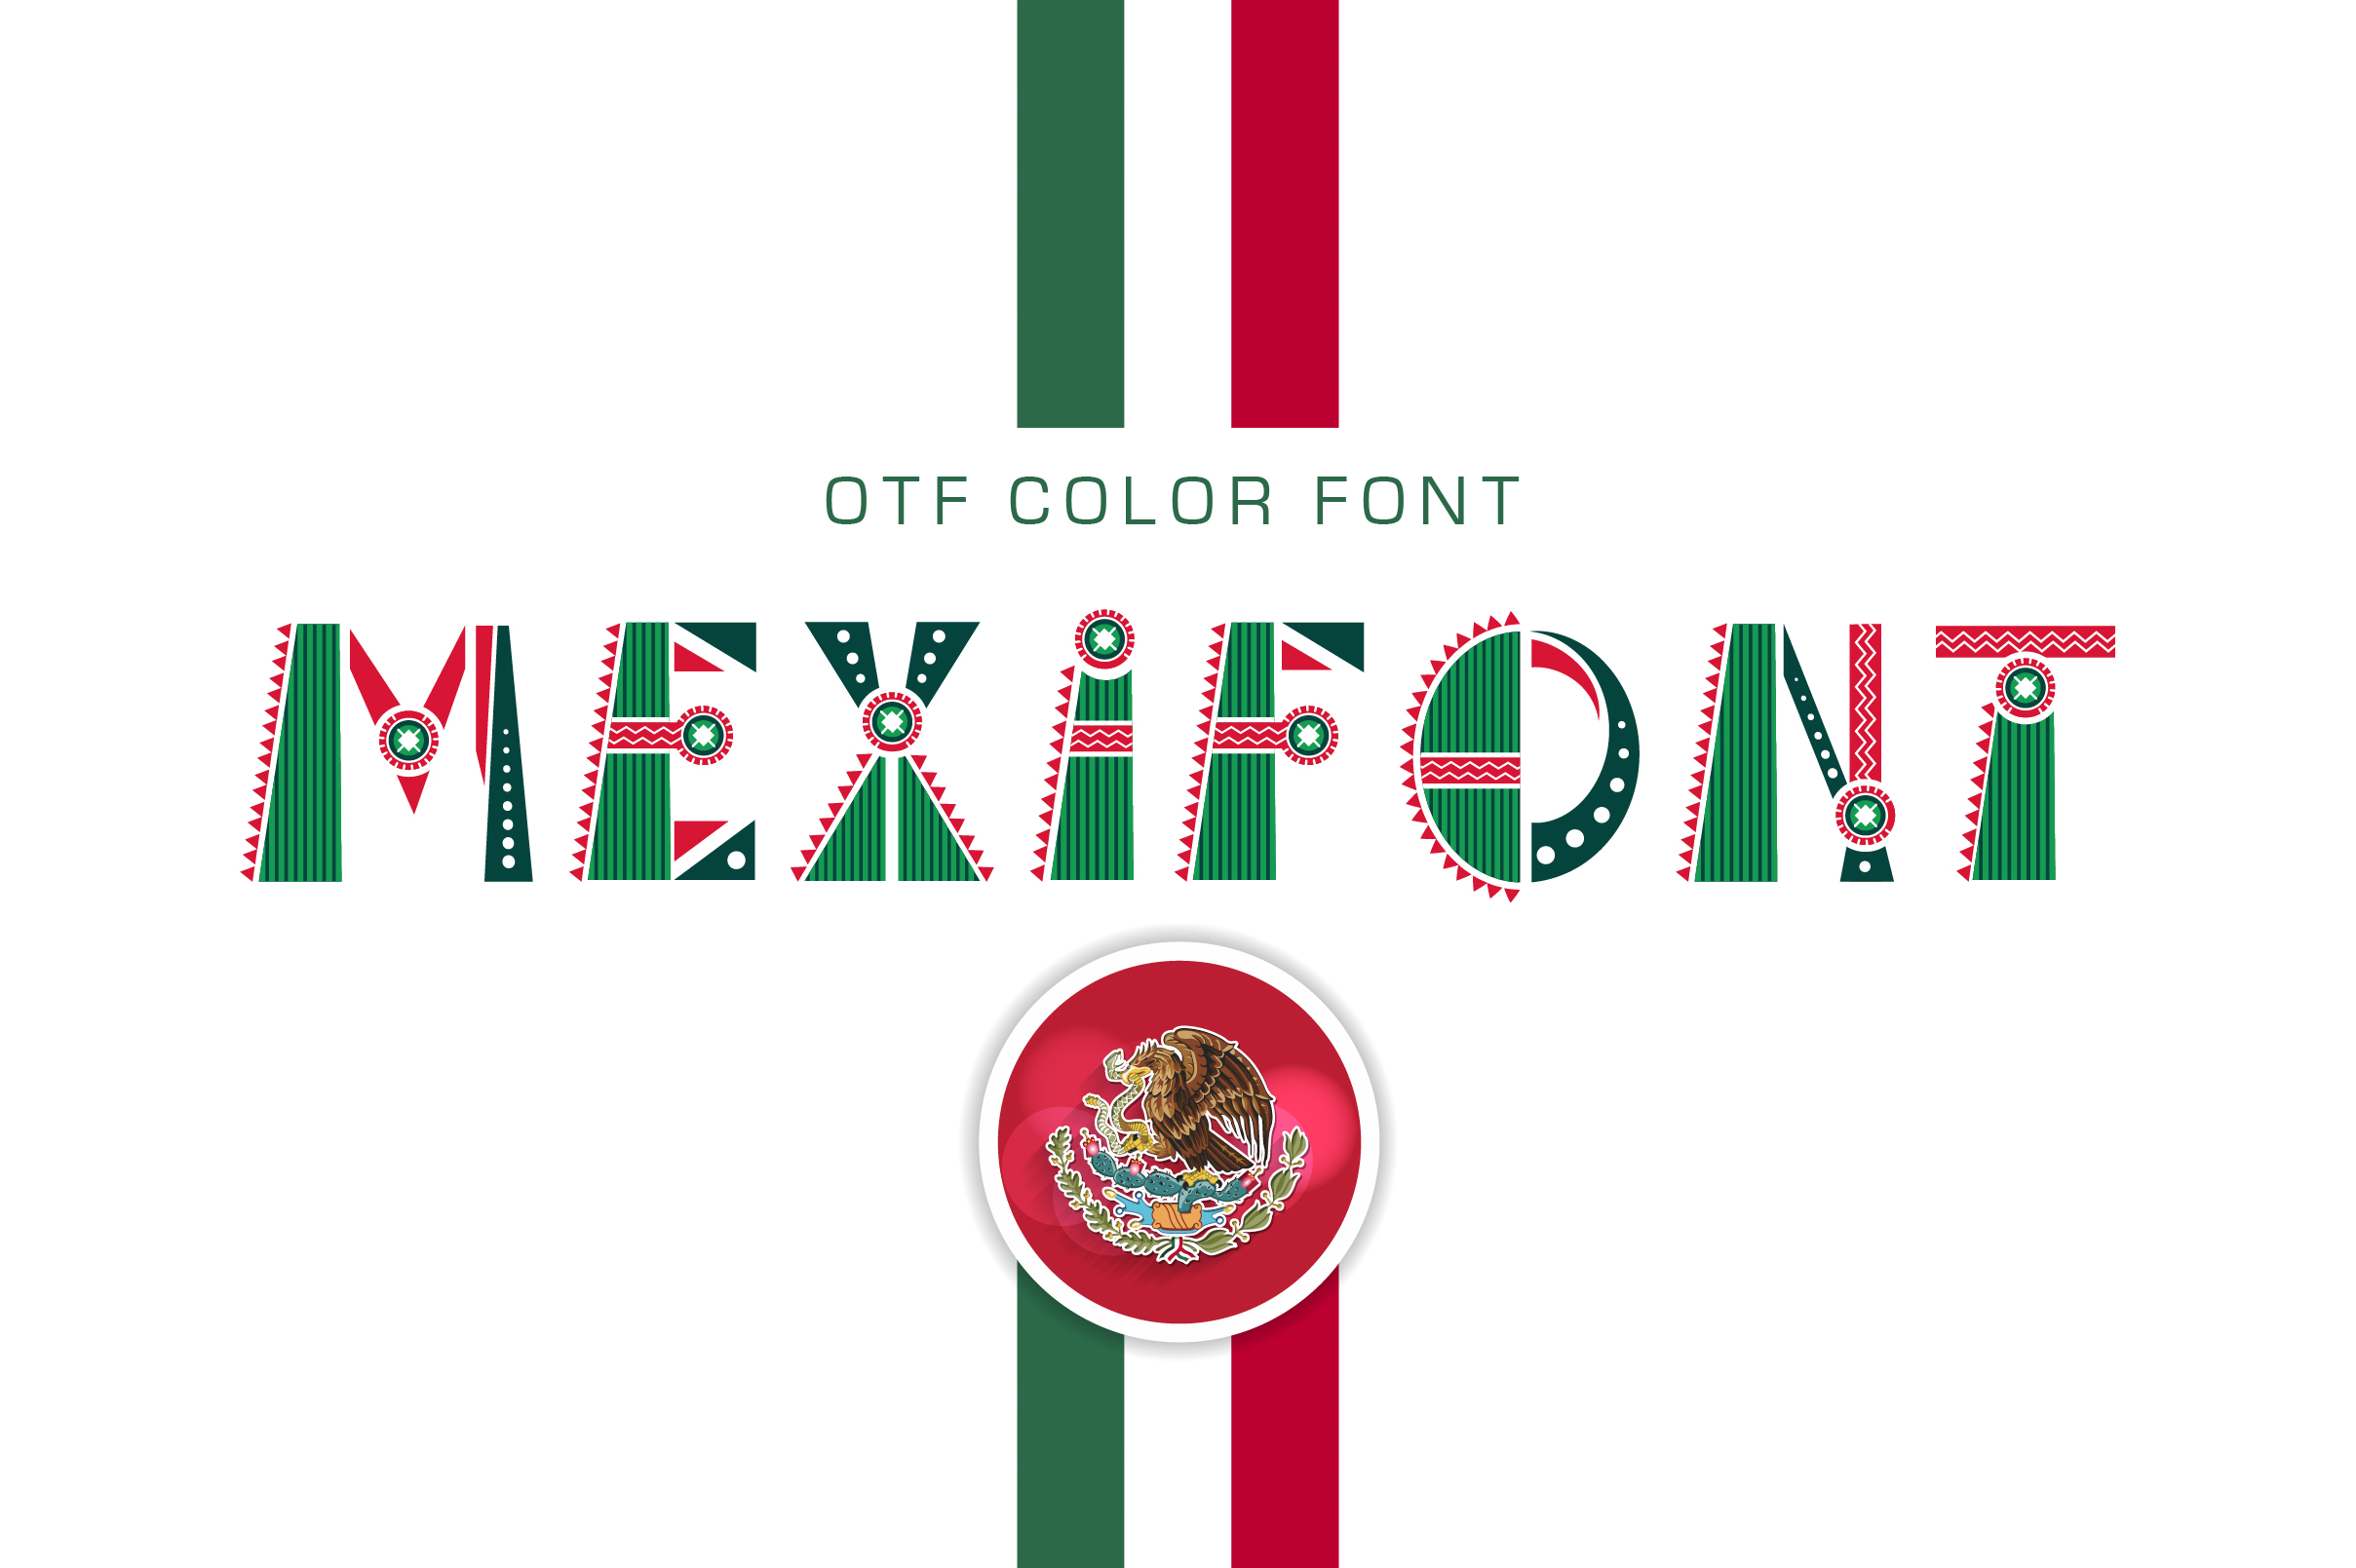 OTF color font Mexifont example image 1